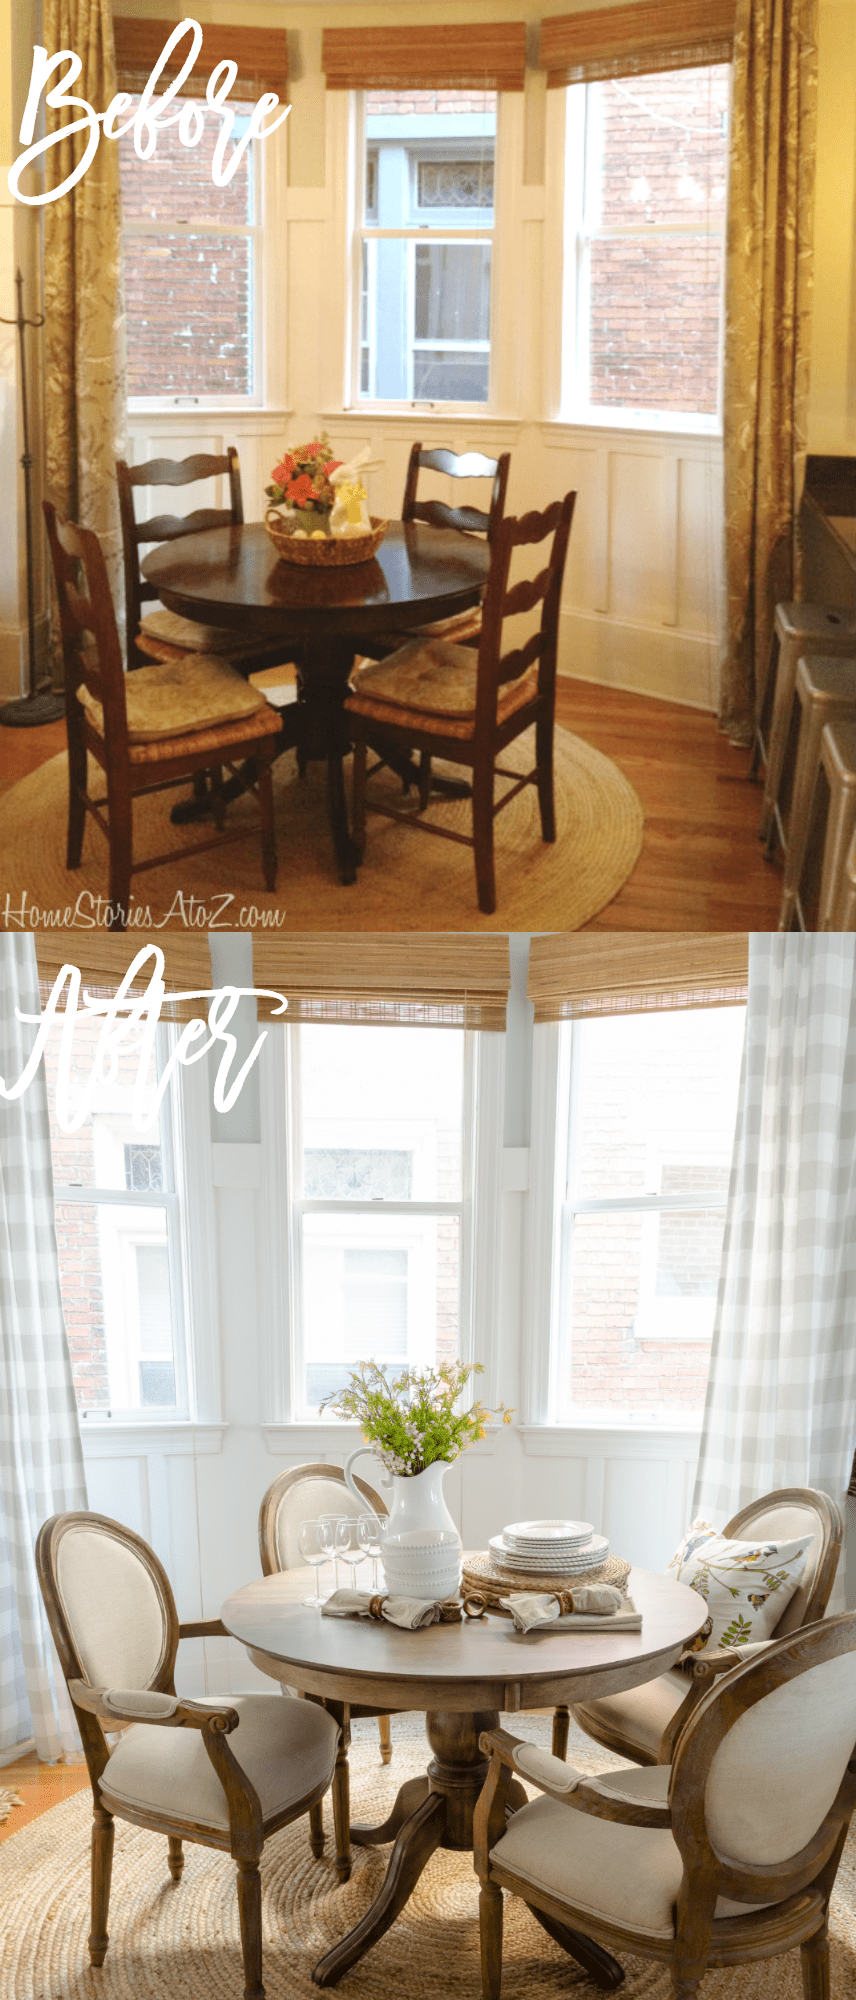 how to refinish a table refinish kitchen table How to Refinish a Wood Table